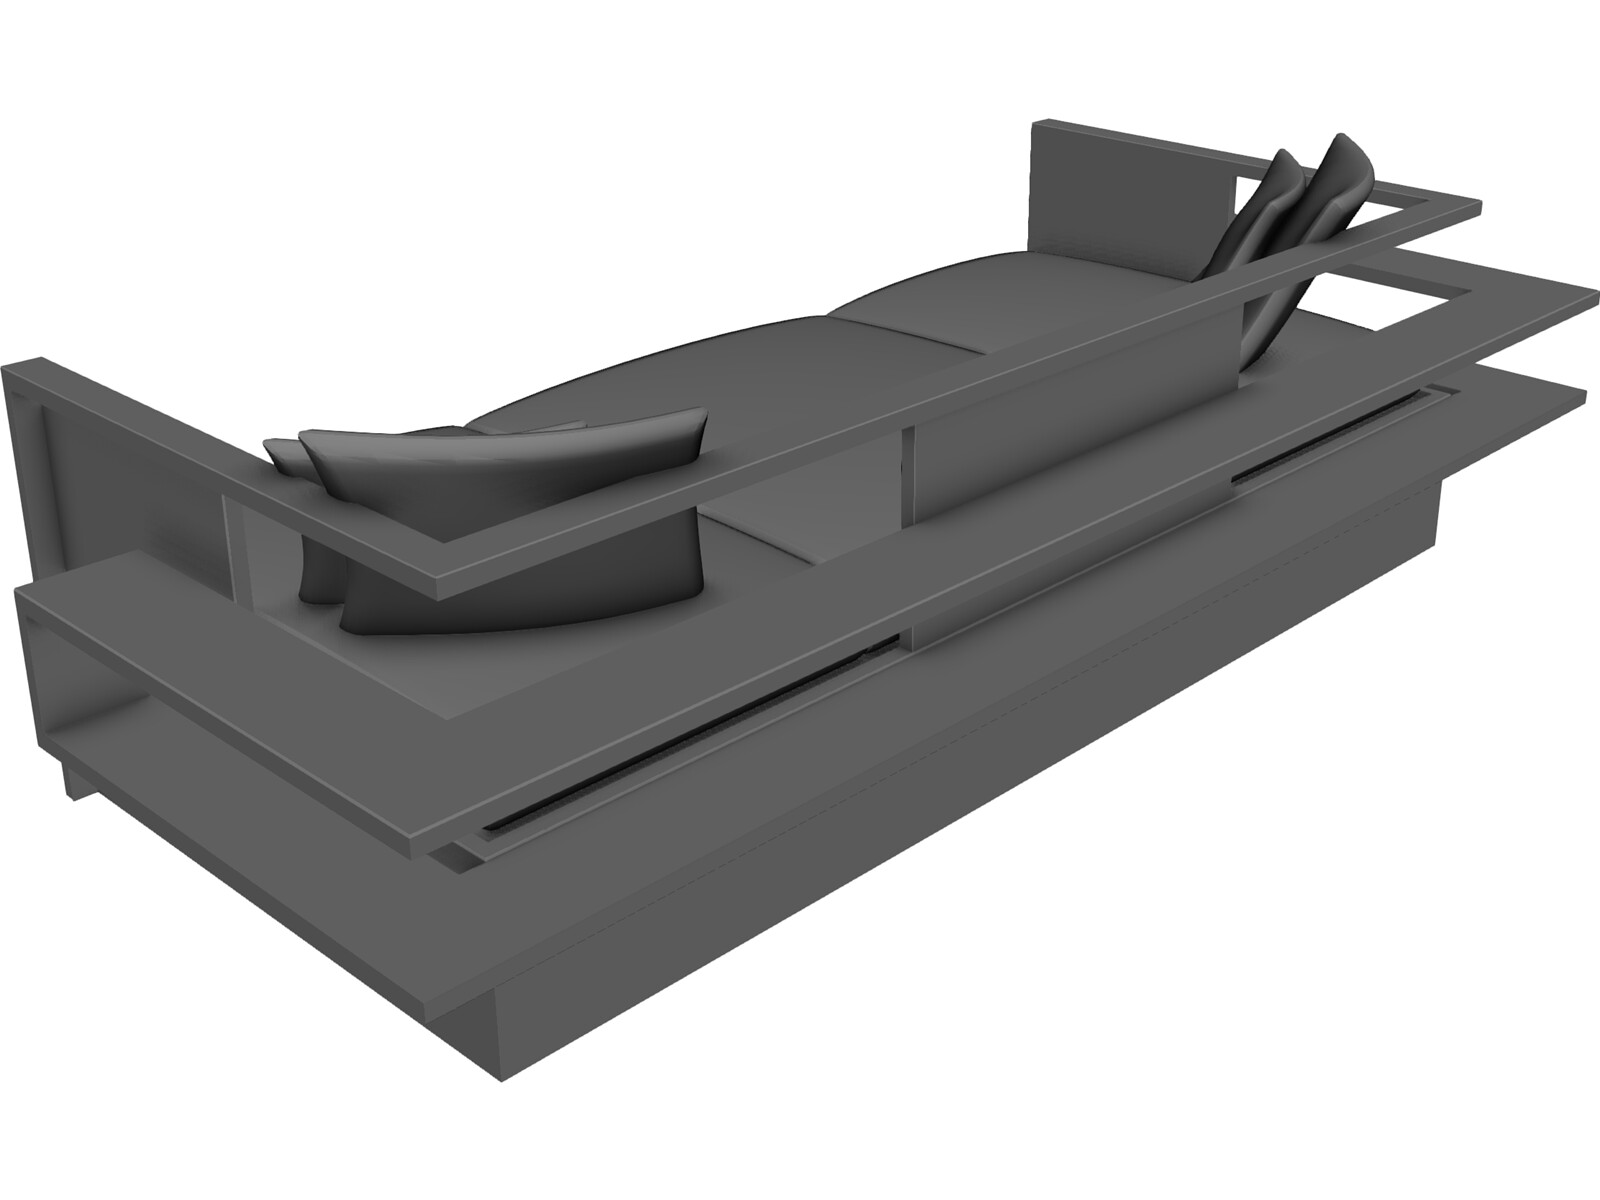 Sling Sofa 3D Model Download - 3D CAD Browser